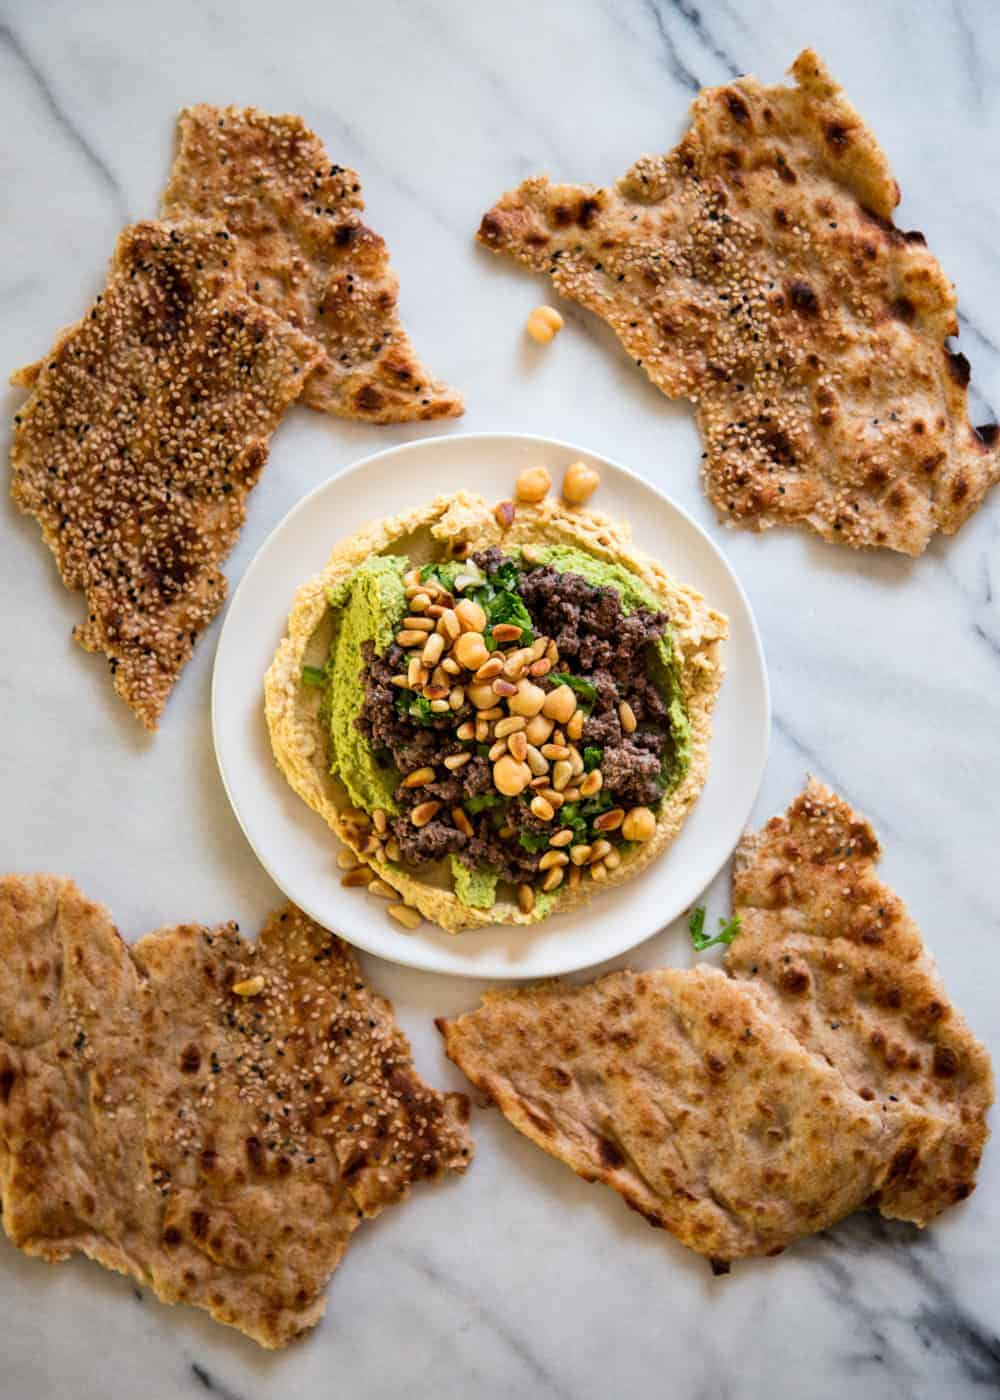 overhead image of hummus kawarma, surrounded by seeded flatbread crackers